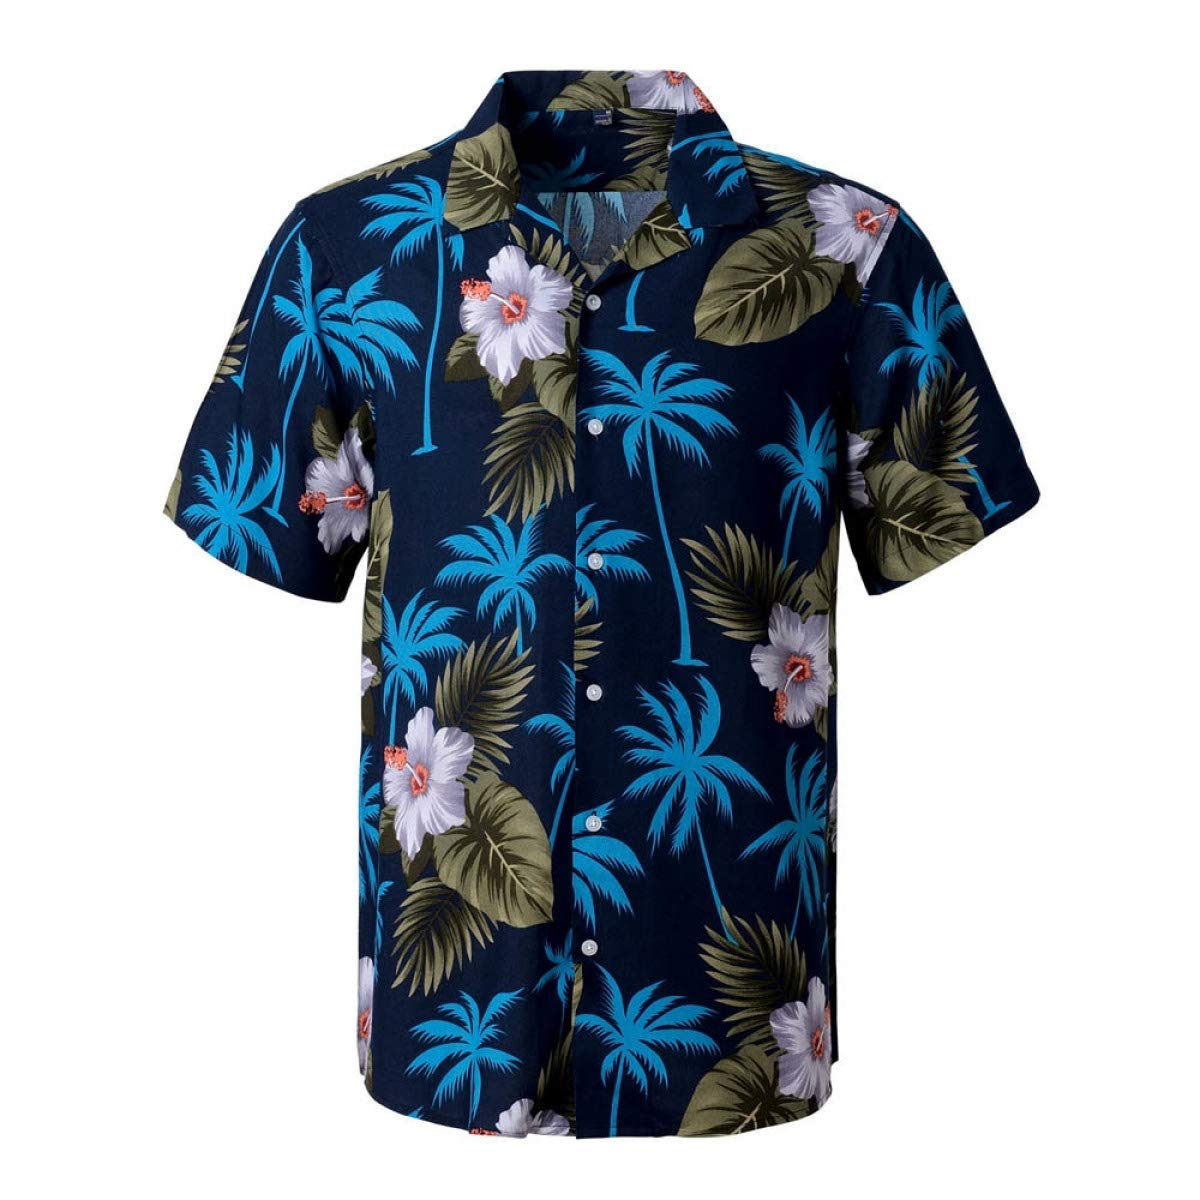 Aloha Shirt Men Mens Short Sleeve Beach Hawaiian Shirts Summer Cotton Casual Floral Shirts Mens Clothing